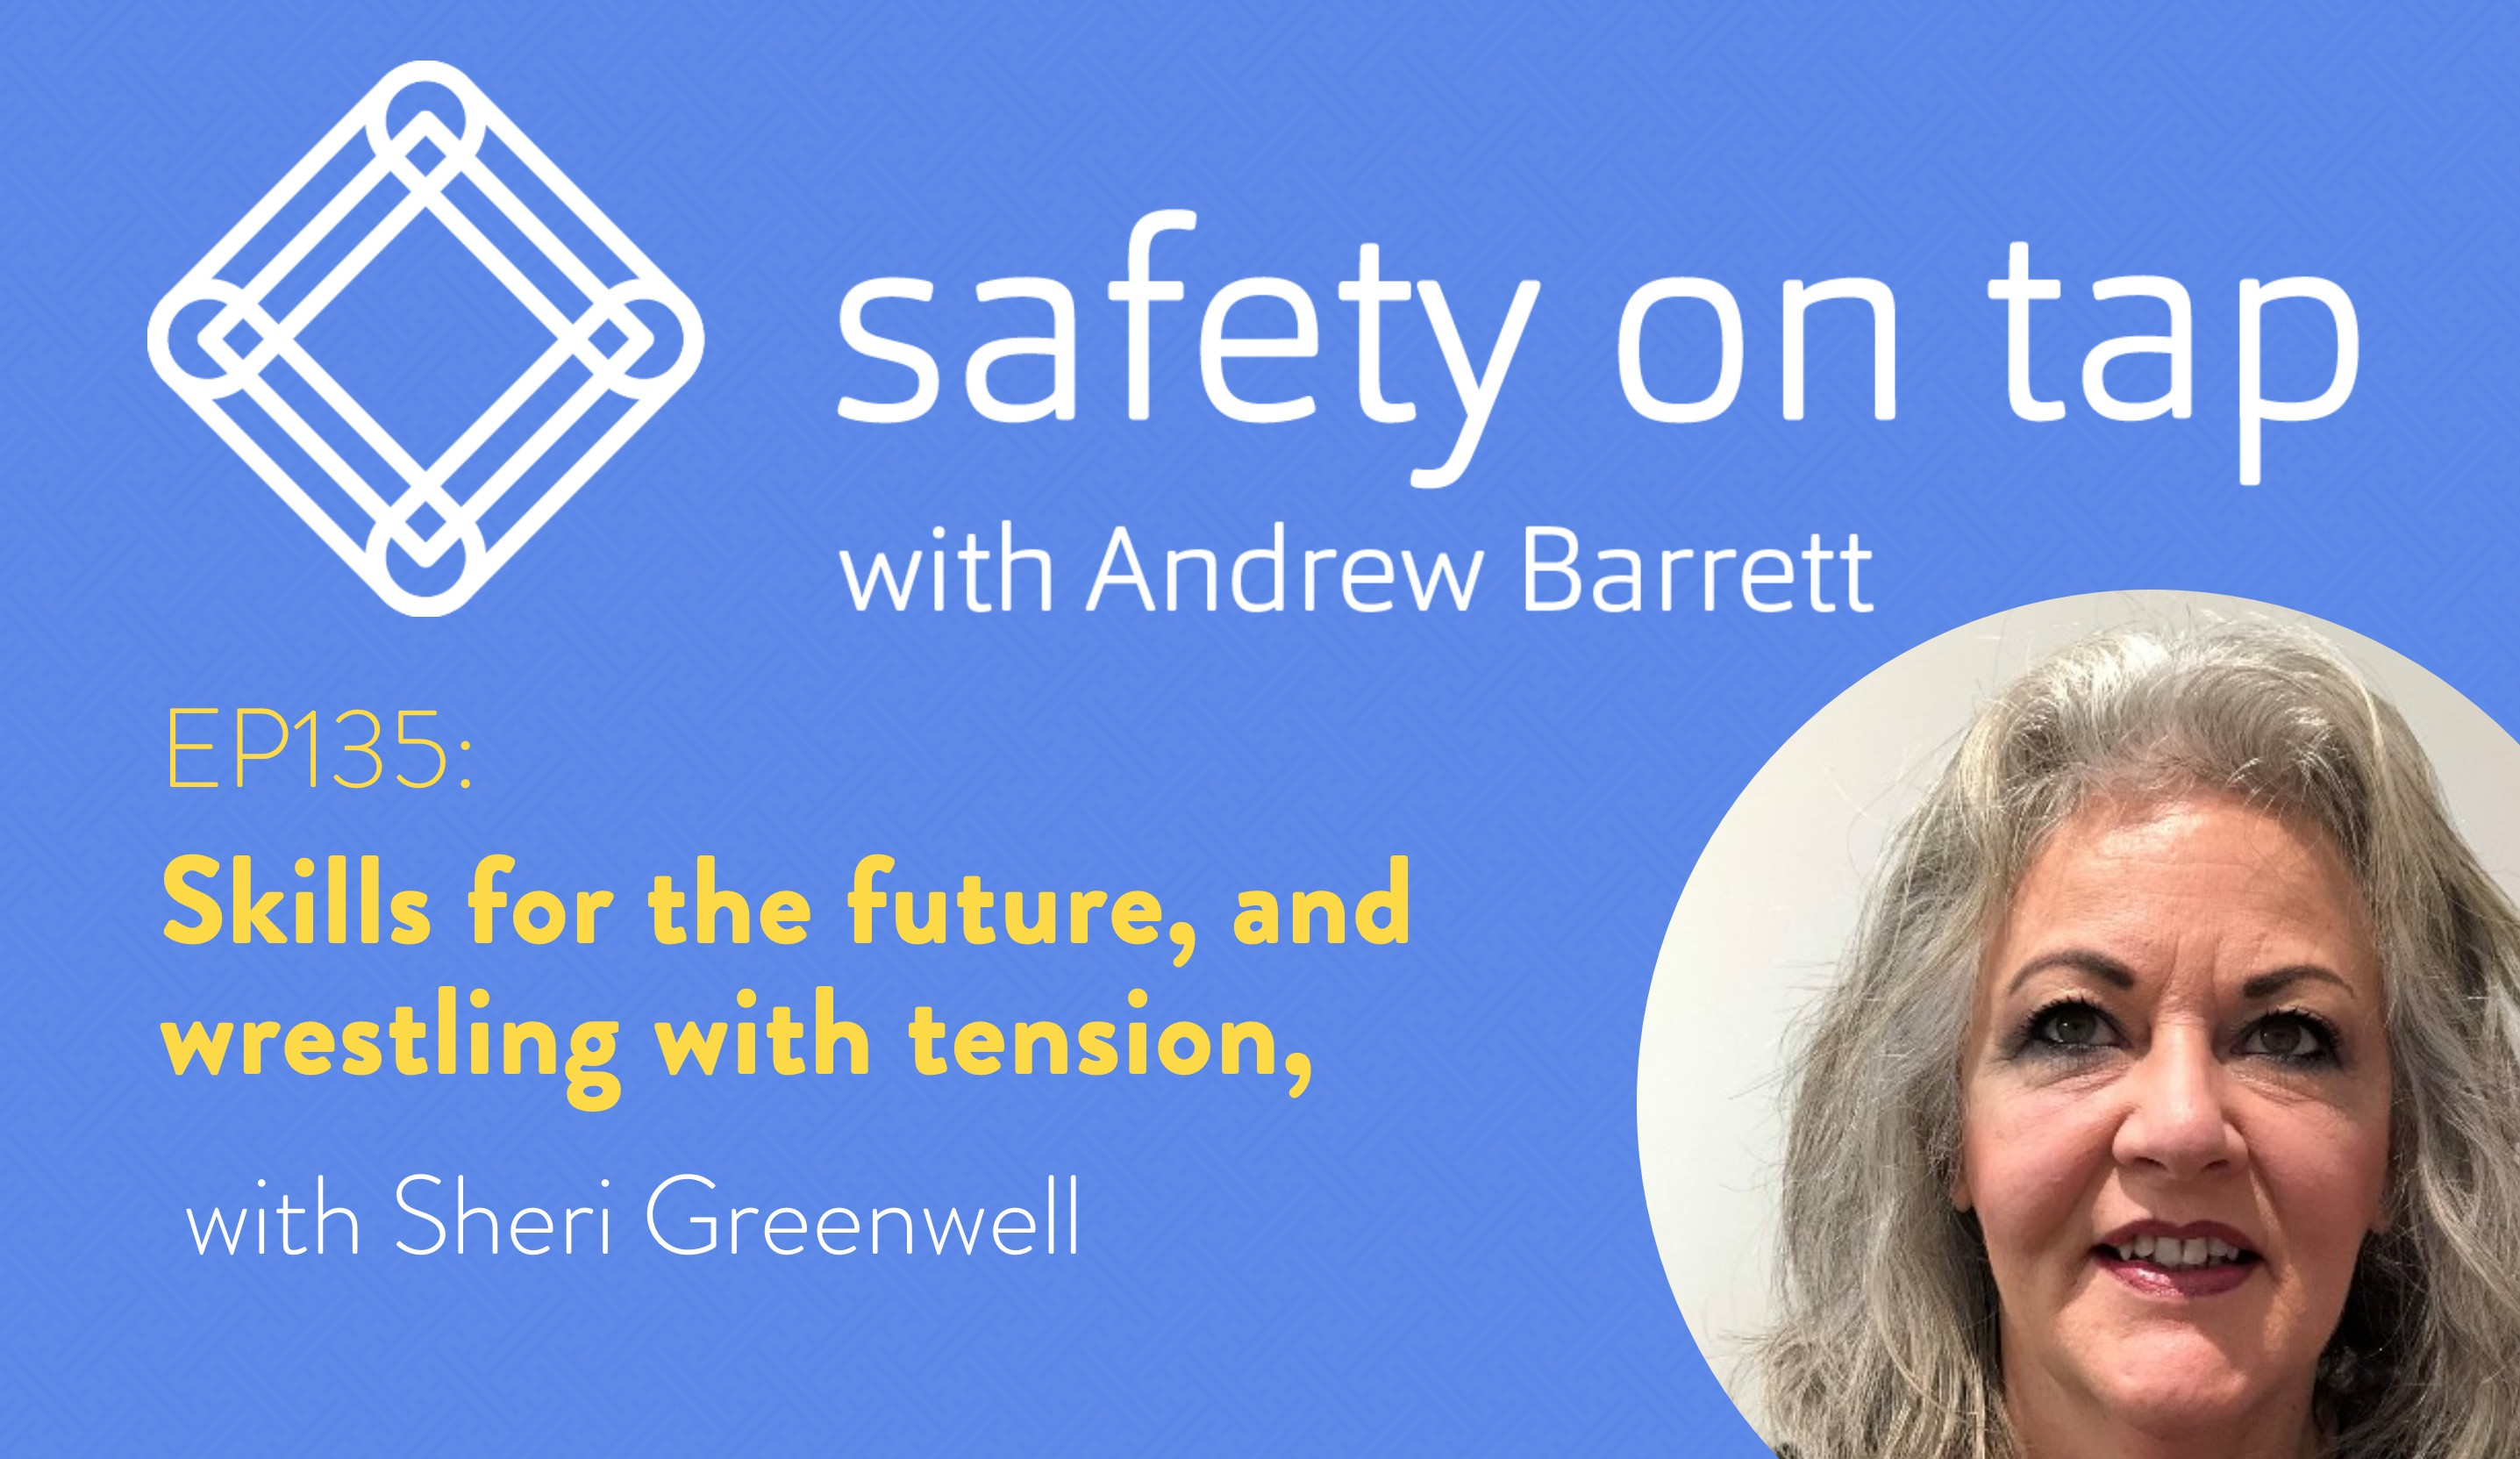 Ep135: Skills for the future, and wrestling with tension, with Sheri Greenwell